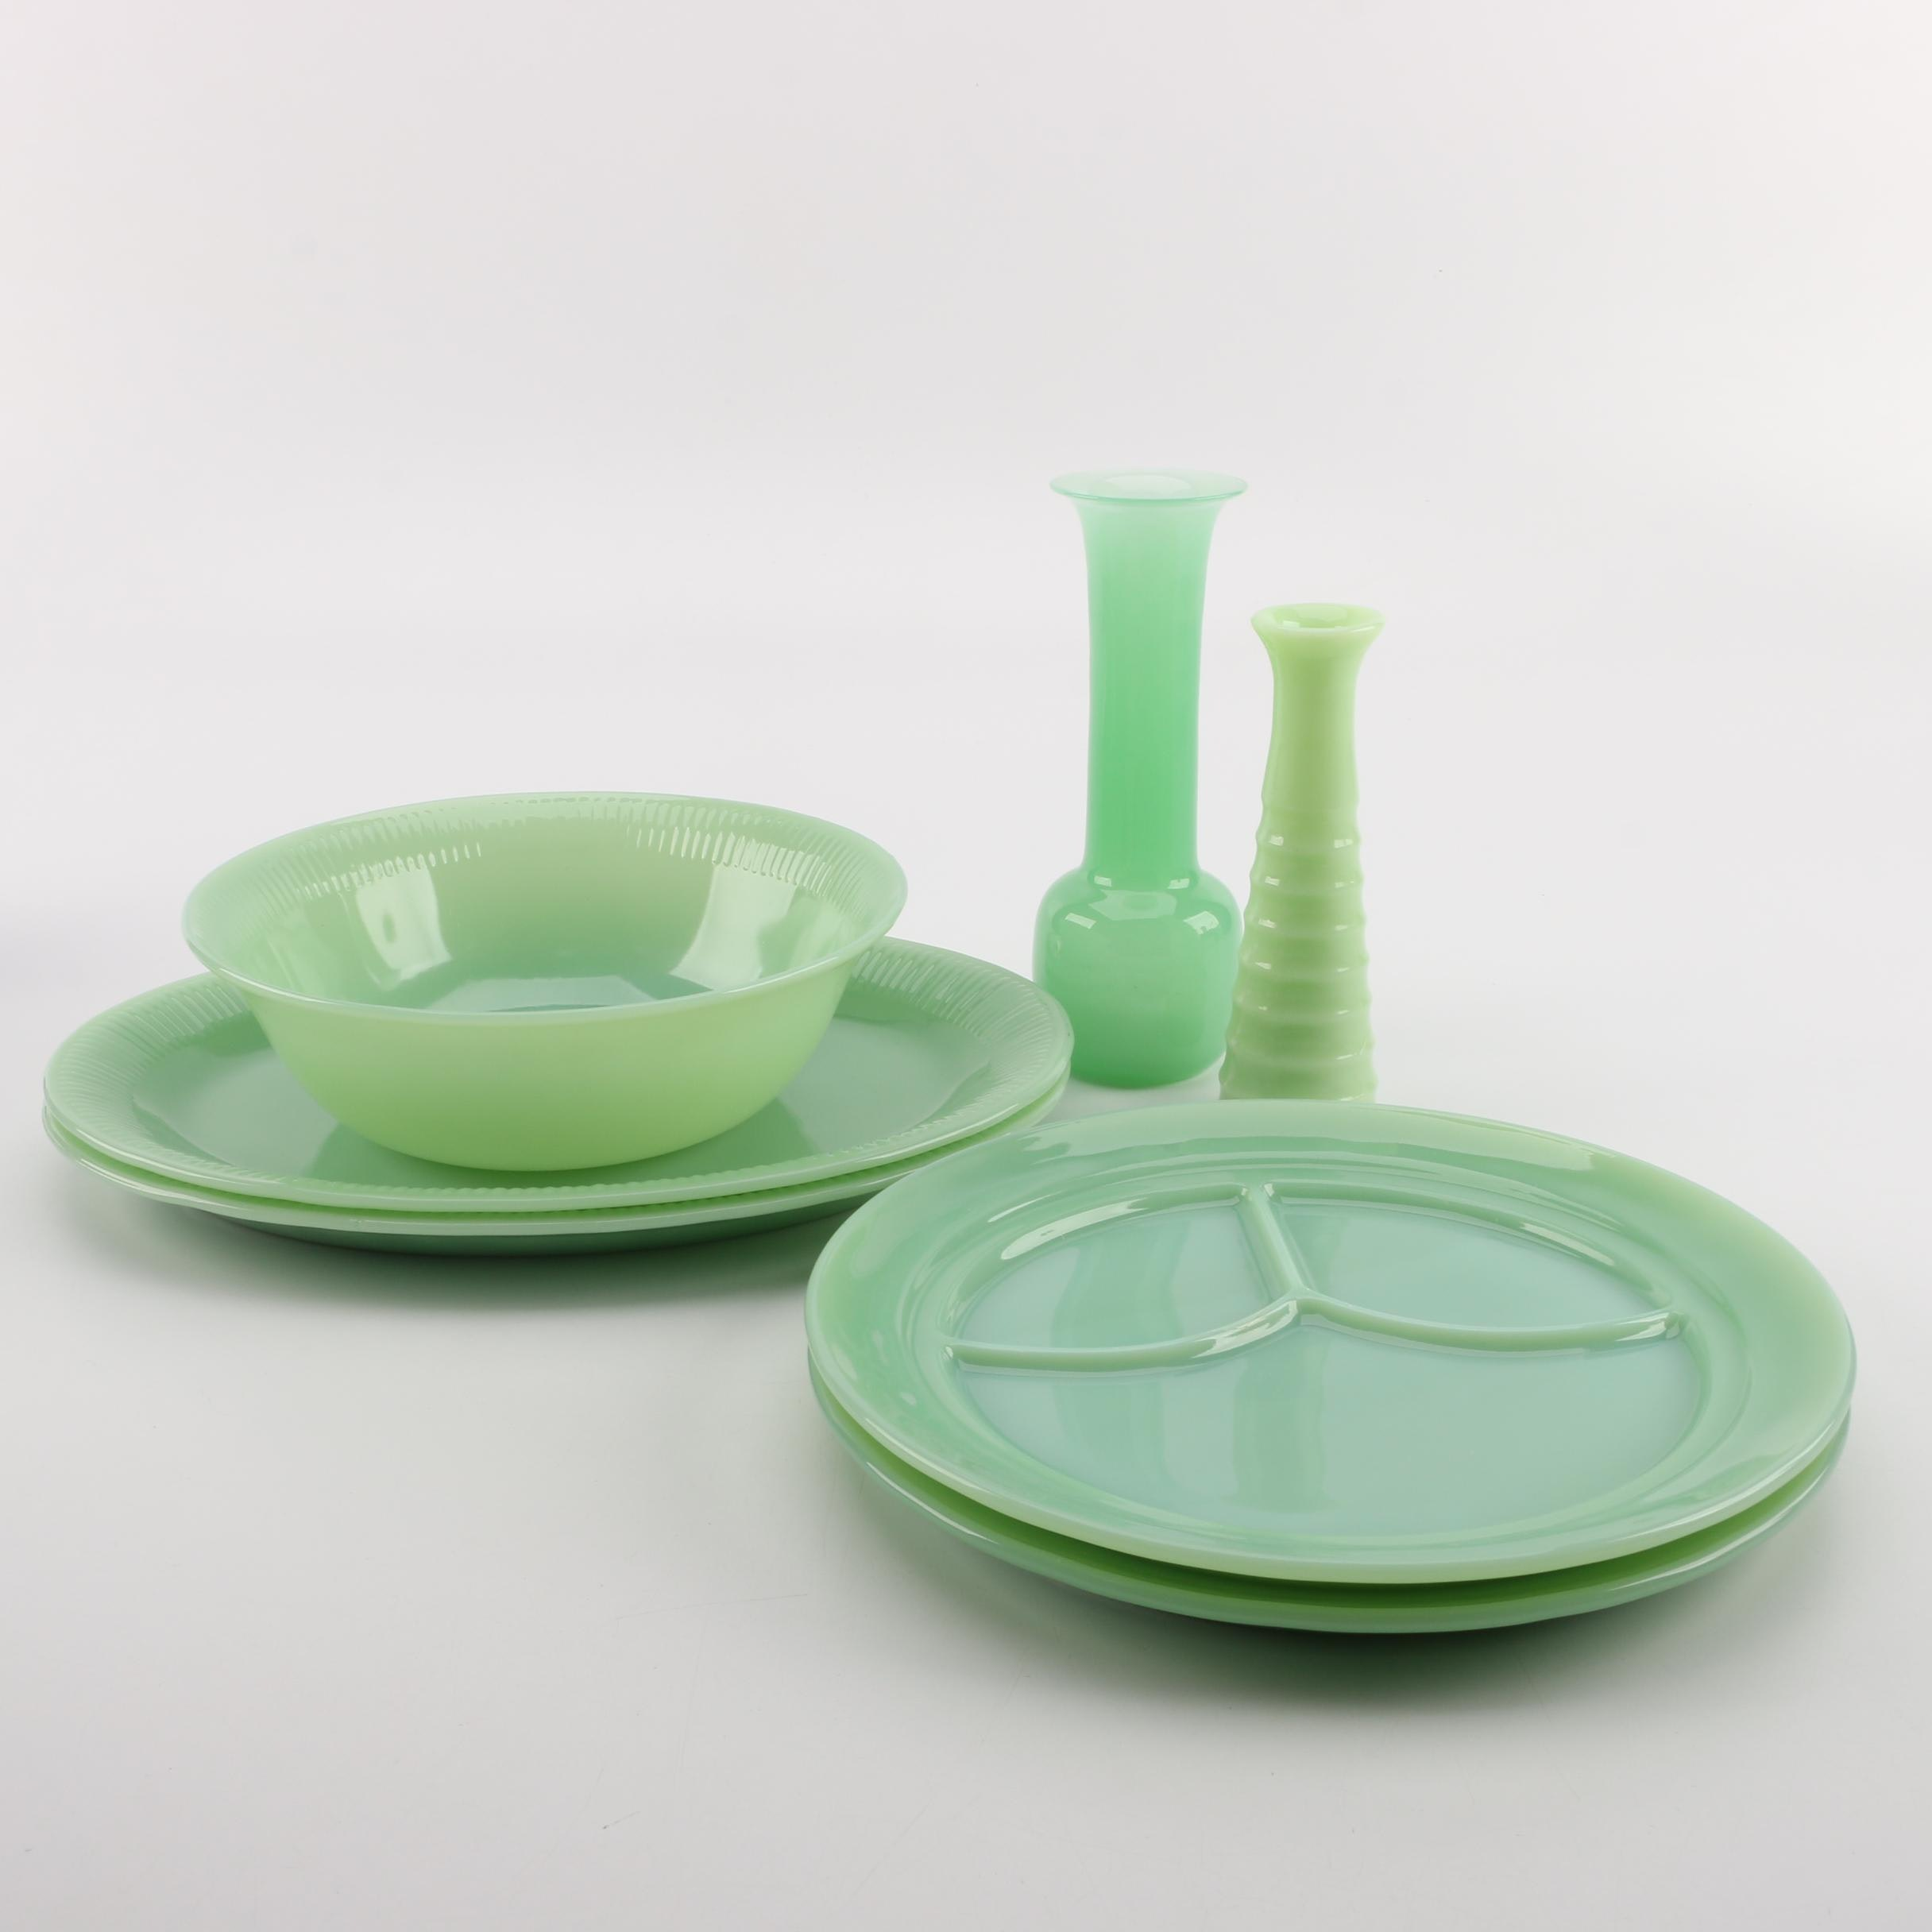 Vintage Green Glass Tableware and Accessories Featuring Fire King Jadeite